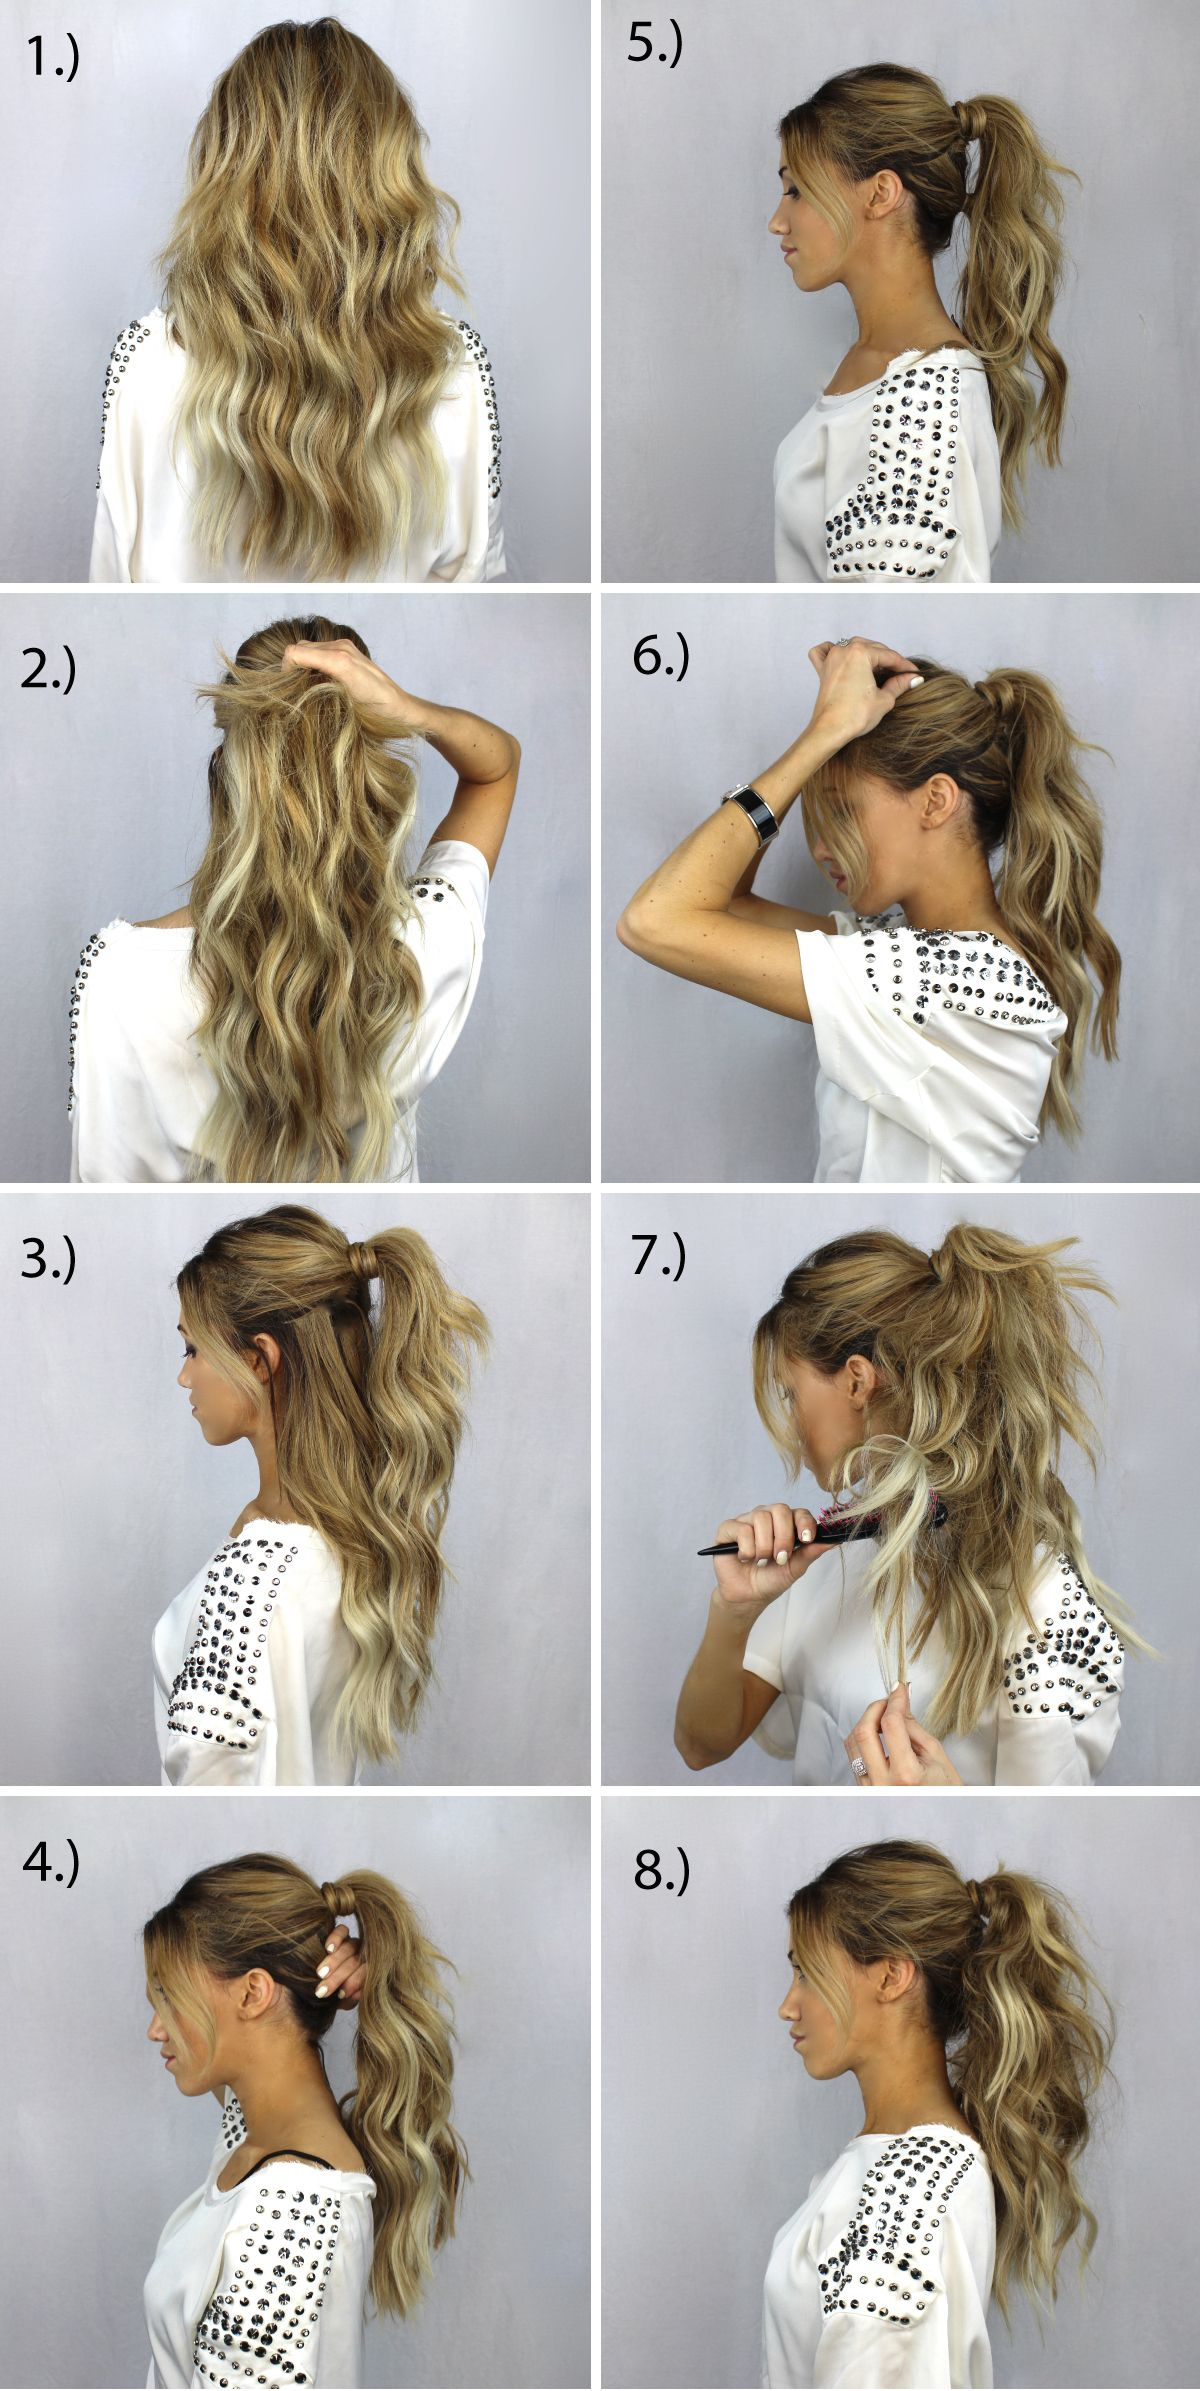 Fake your ponytail Get your huurrr done Pinterest